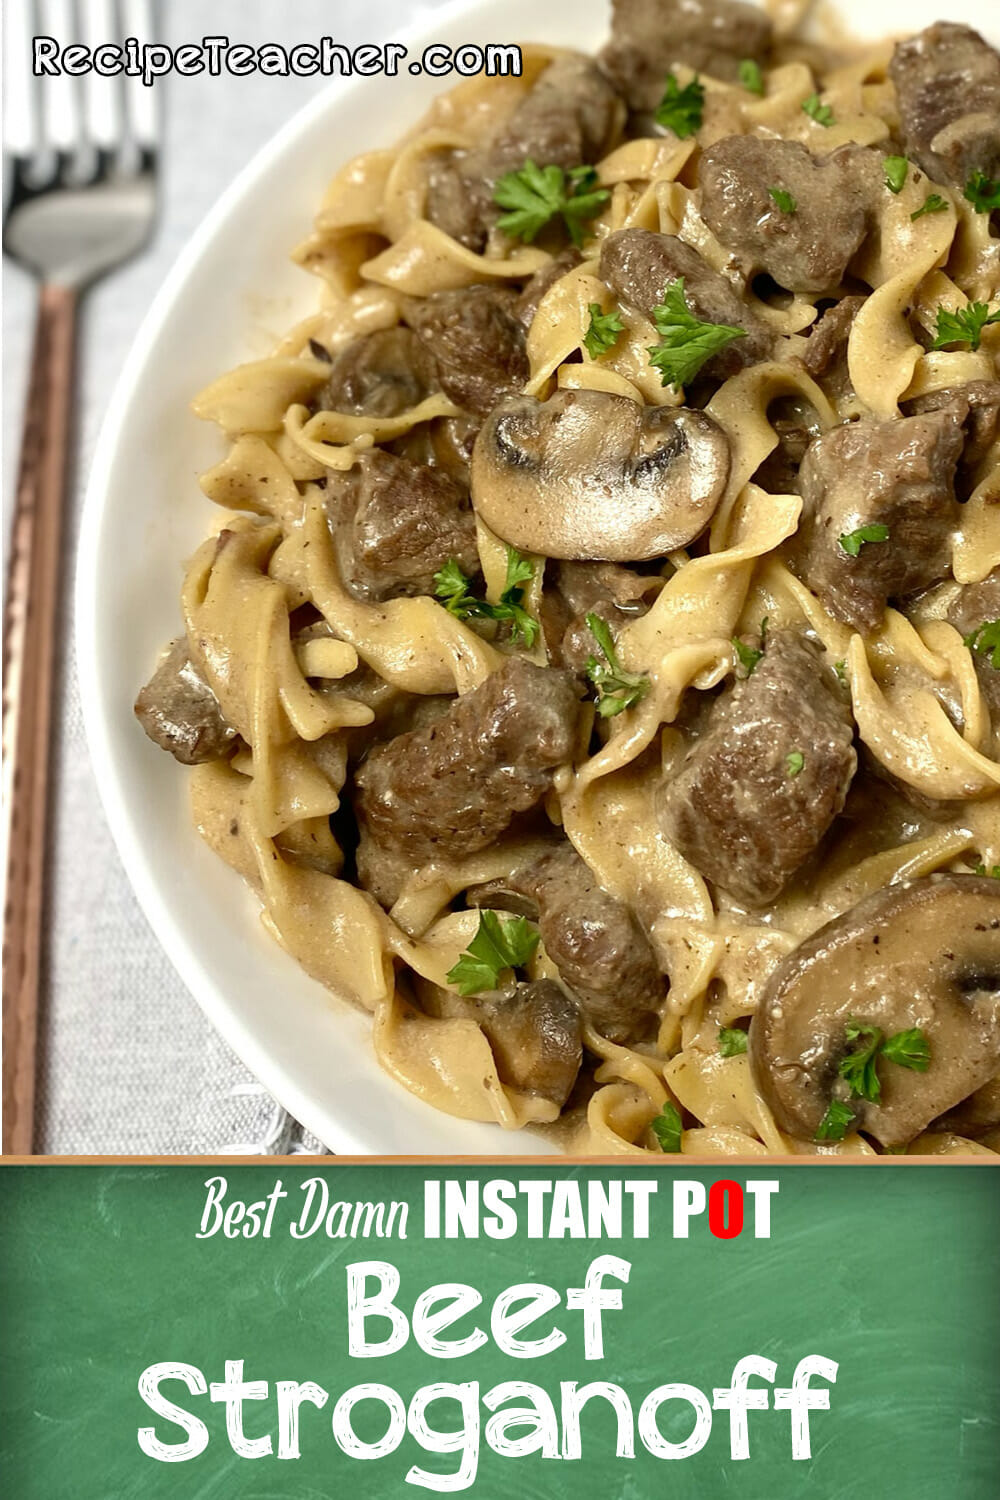 Beef stroganoff cooked to perfection in an Instant Pot